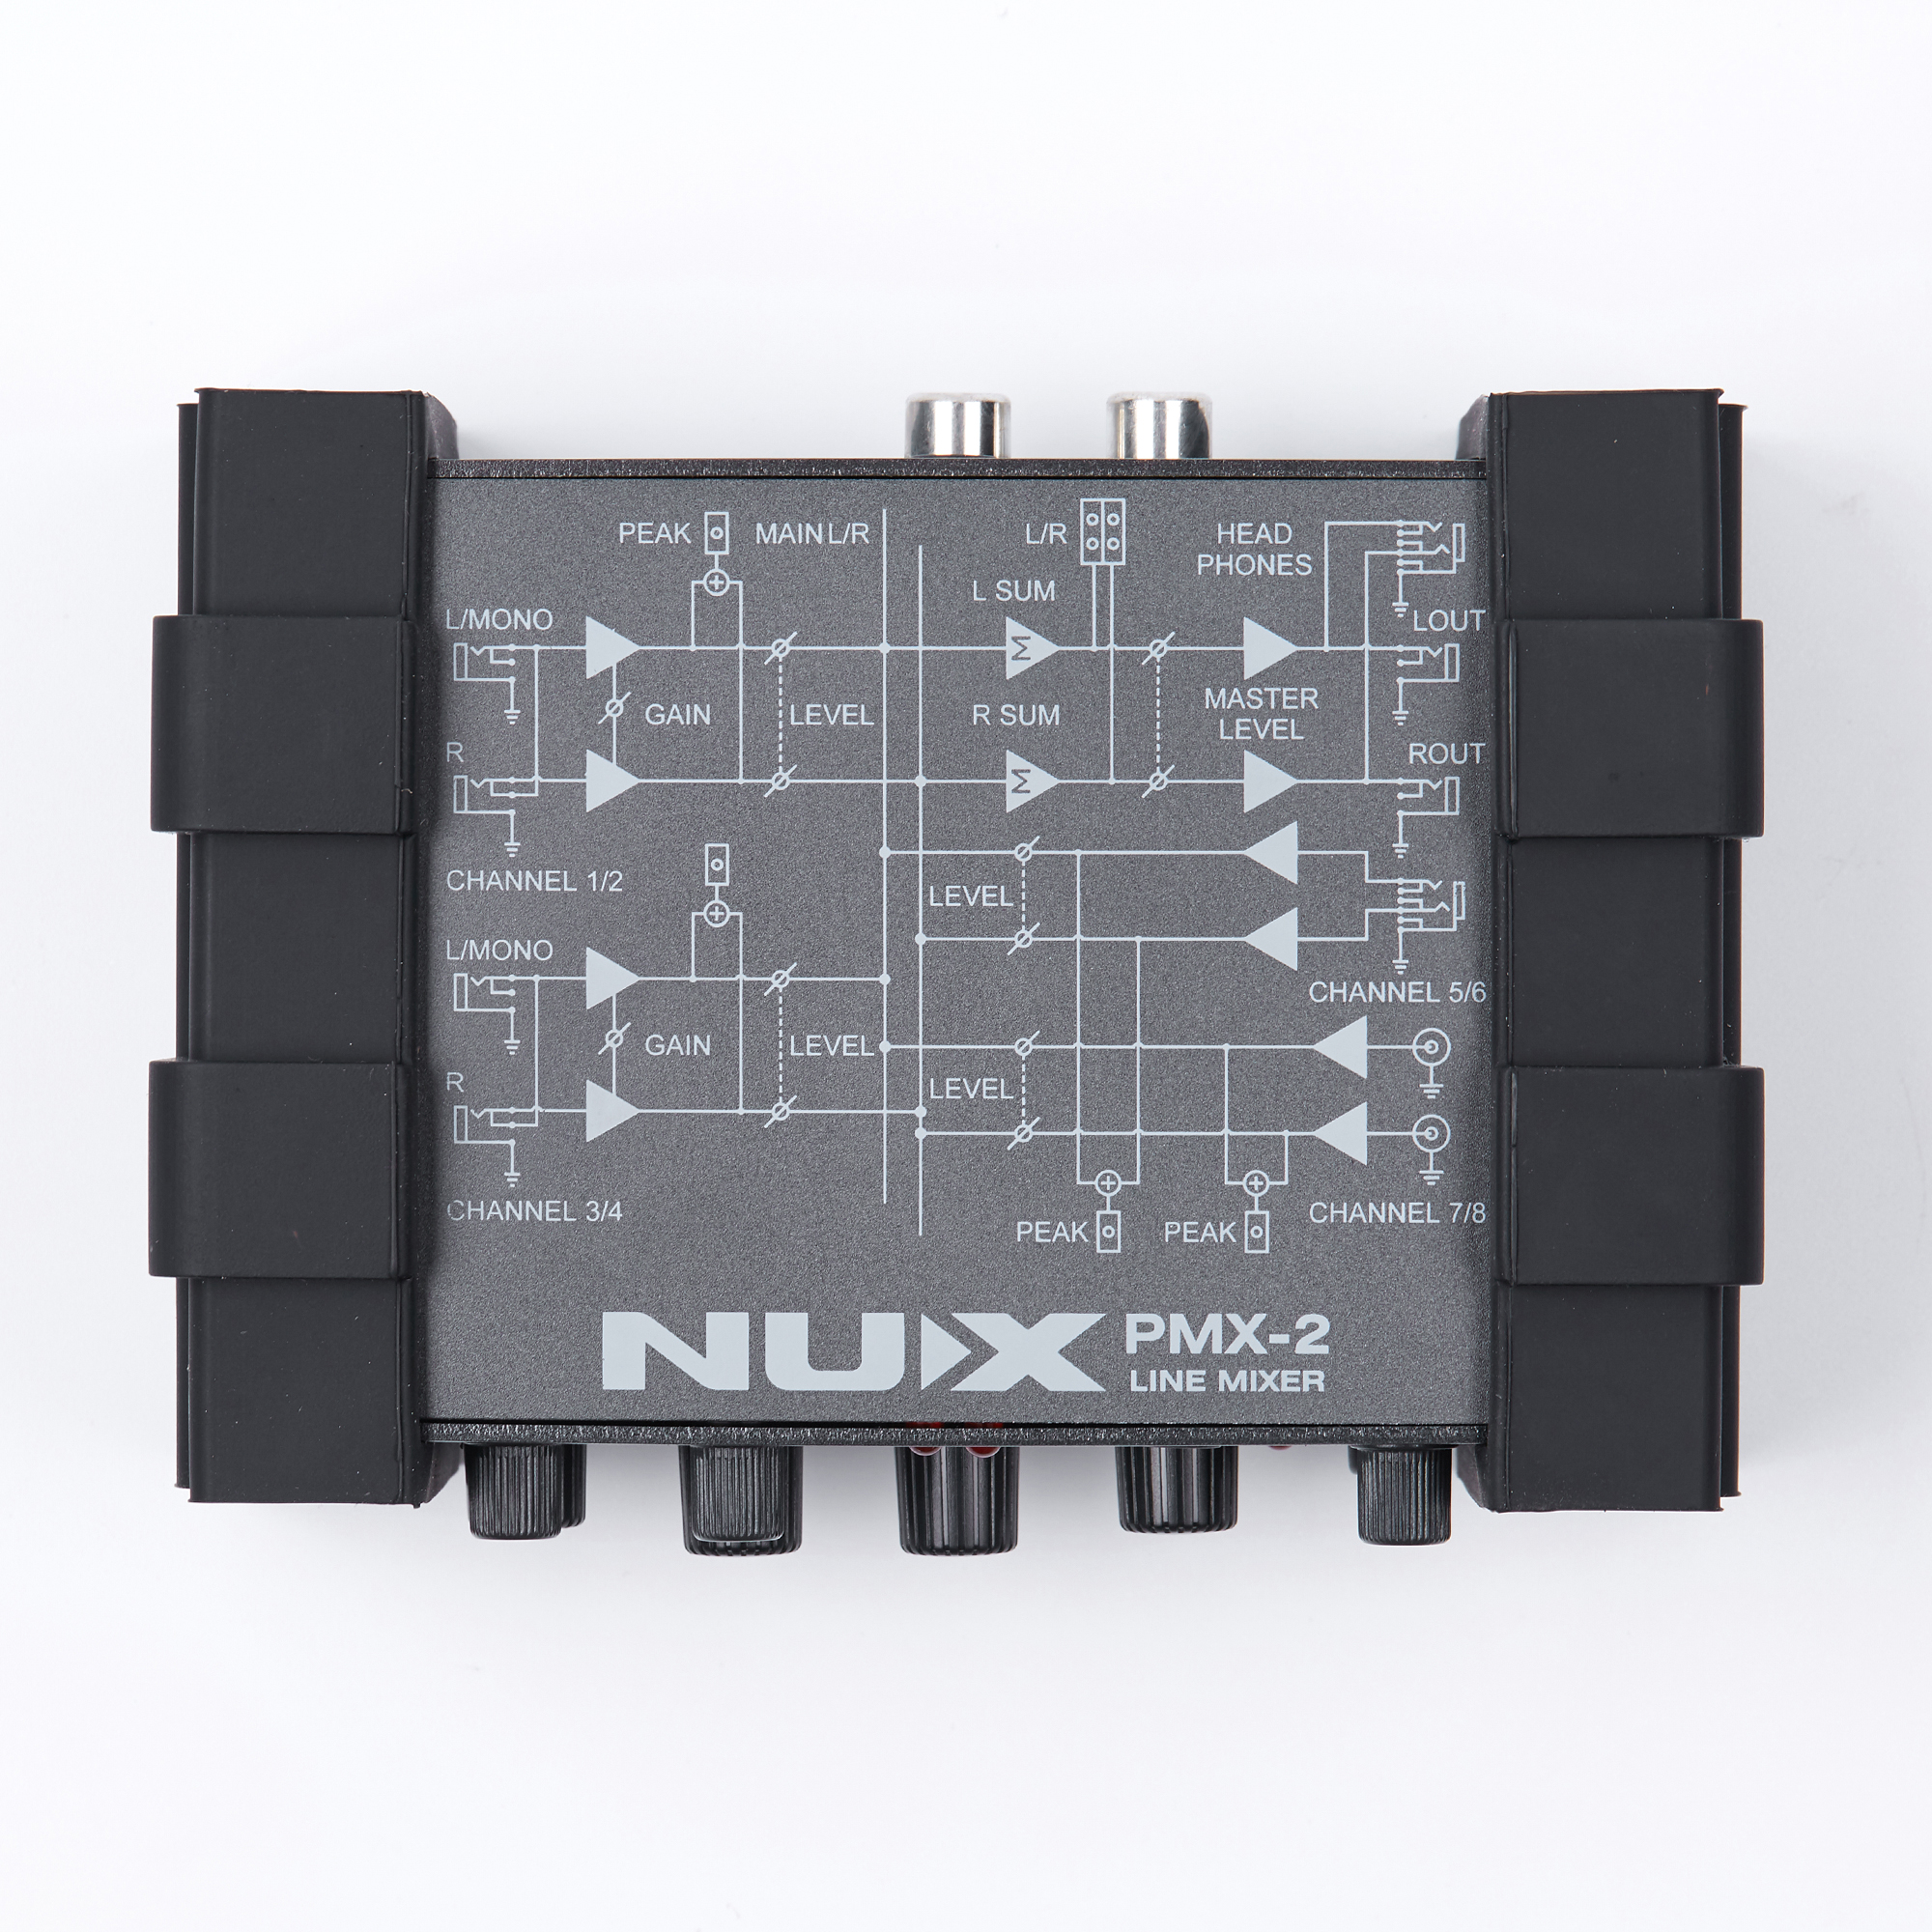 Gain Control 8 Inputs and 2 Outputs NUX PMX-2 Multi-Channel Mini Mixer 30 Musical Instruments Accessories for Guitar Bass Player подвесная люстра mw light афродита 2 317011708